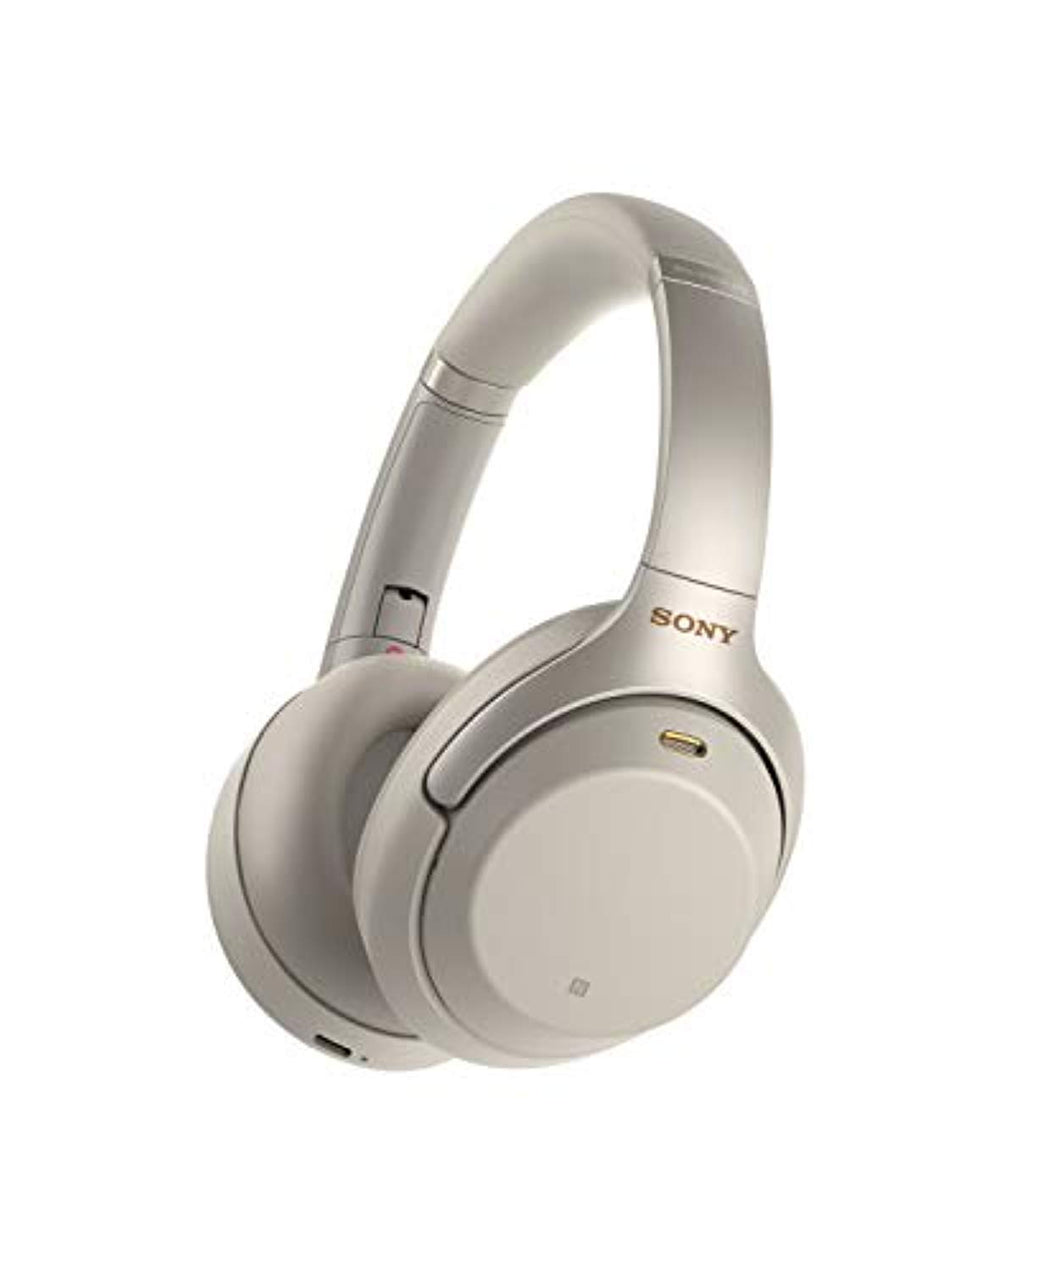 Sony WH1000XM3 Bluetooth Wireless Noise Canceling Headphones Silver WH-1000XM3/S (Certified Refurbished)